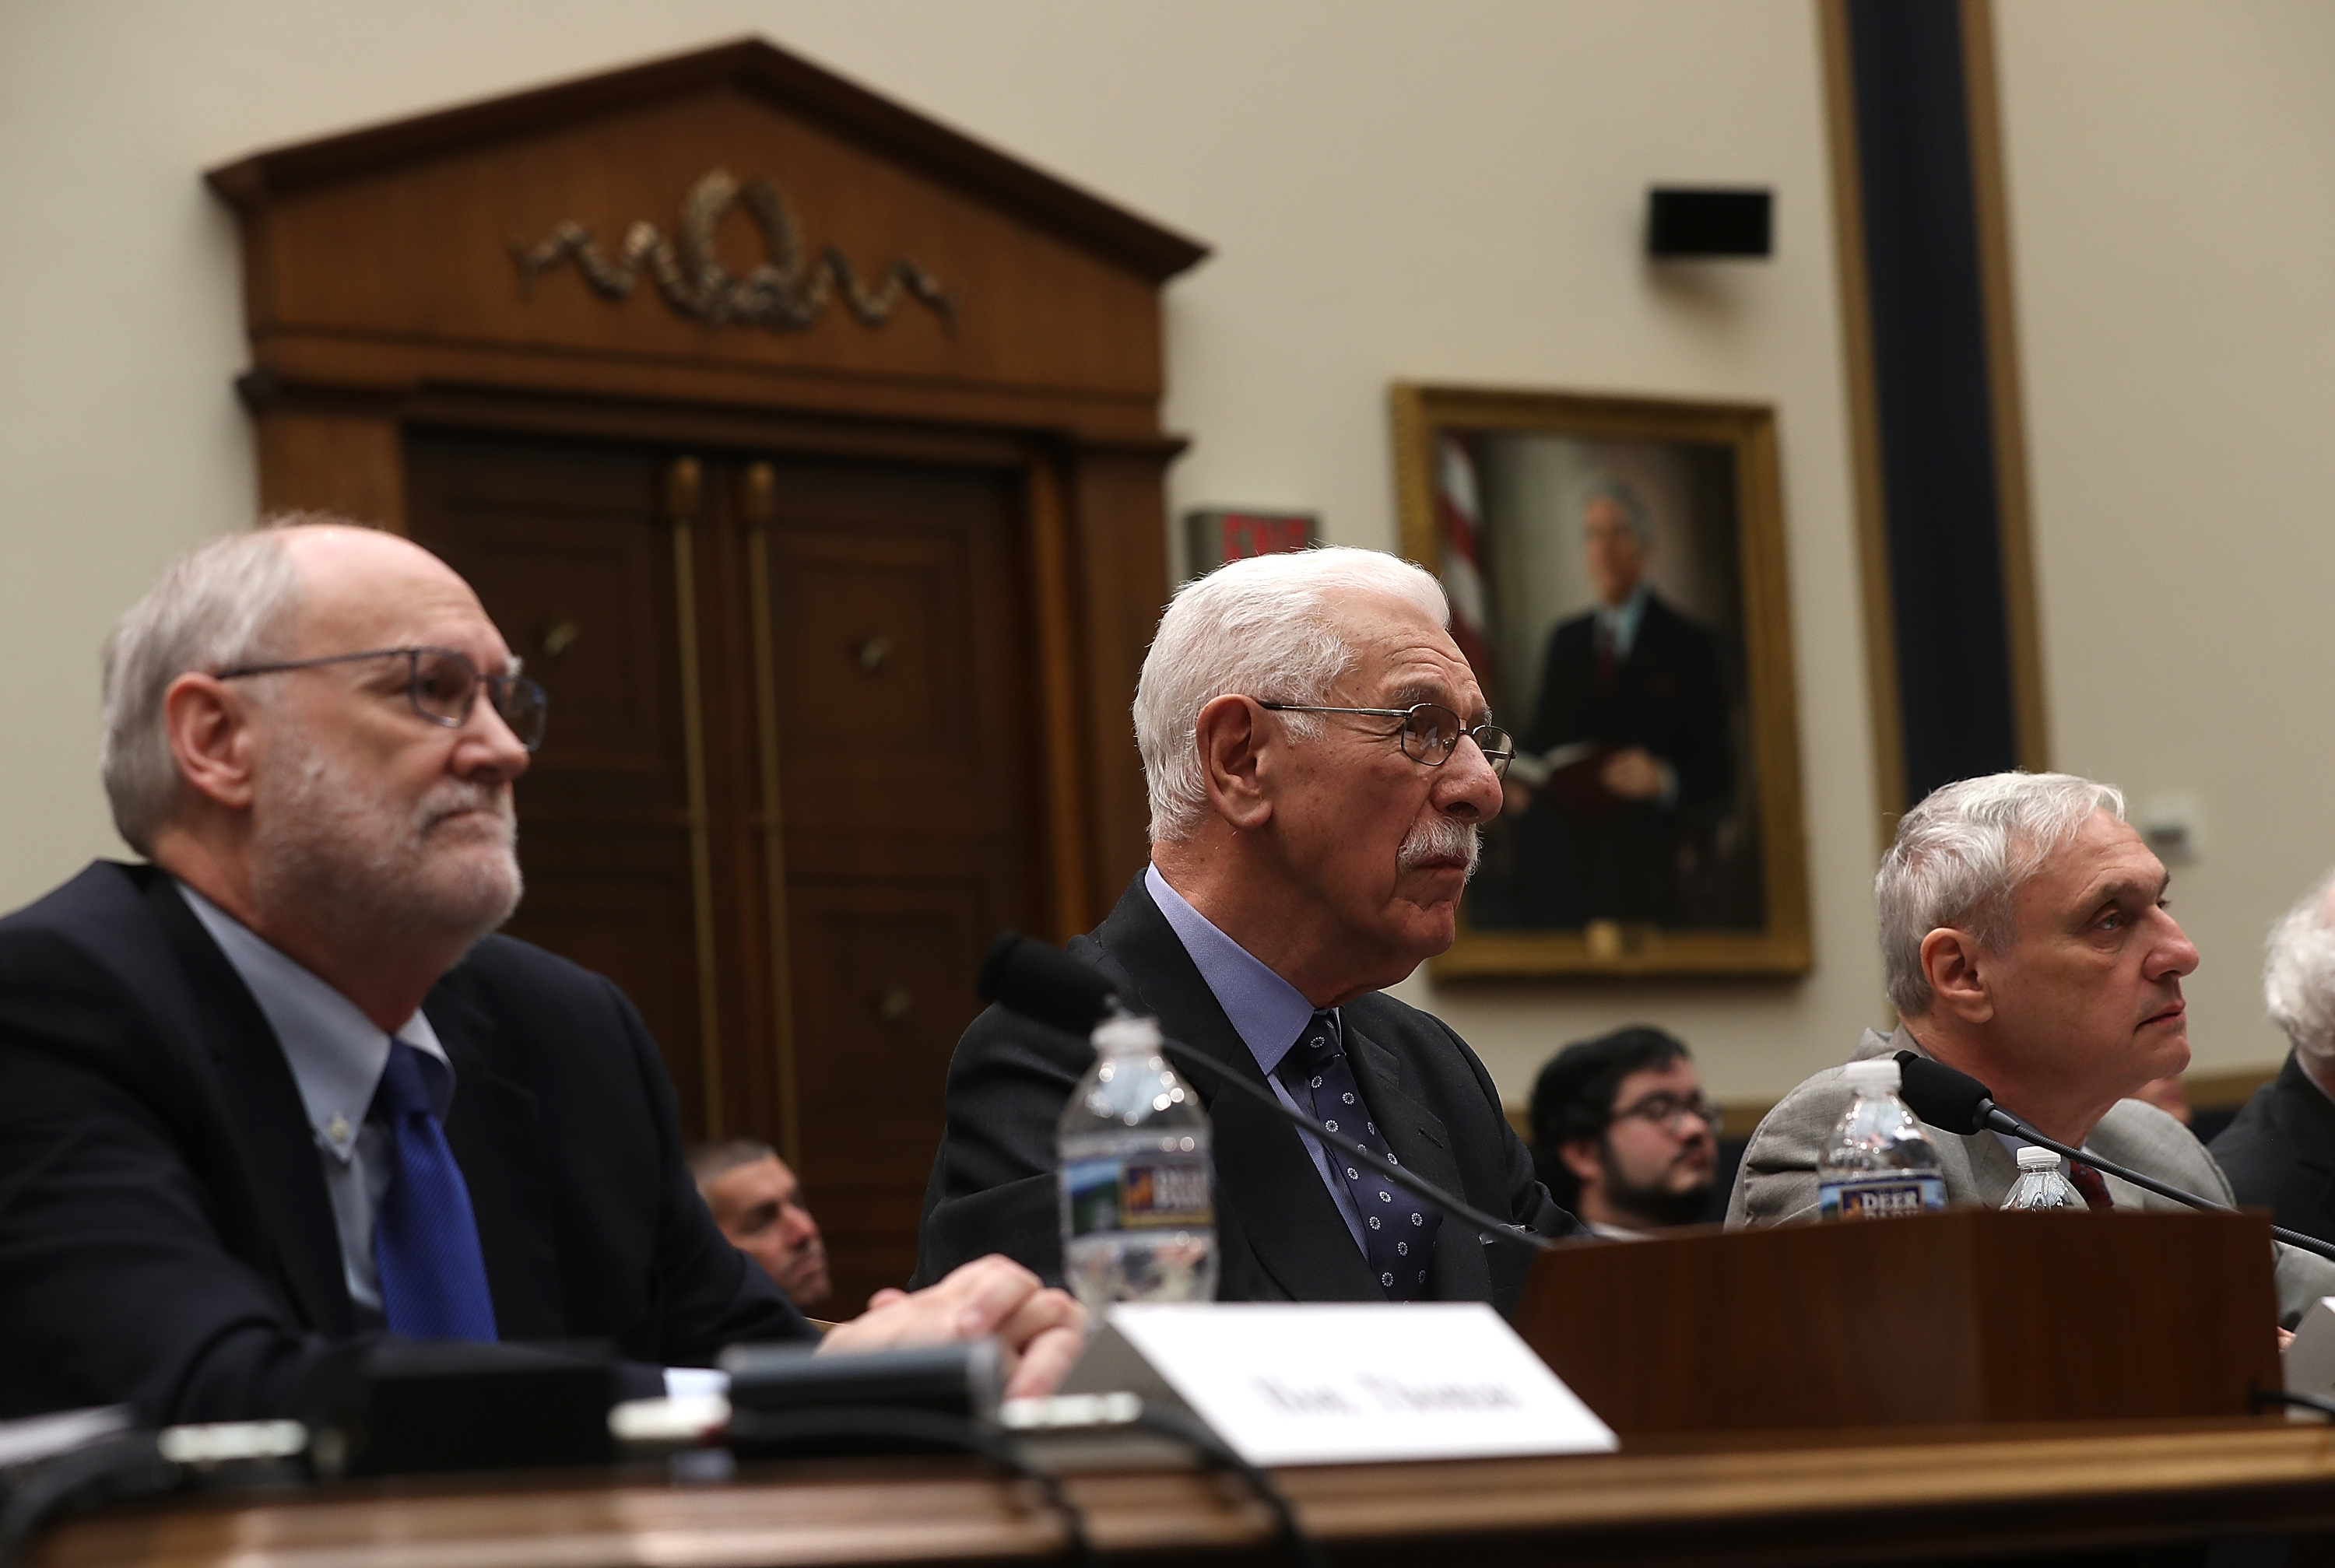 Ninth Circuit Judges Sidney Thomas, Carlos Bea and Alex Kozinski (L-R) during a House Judiciary Committee hearing on March 16, 2017. (Justin Sullivan/Getty Images)